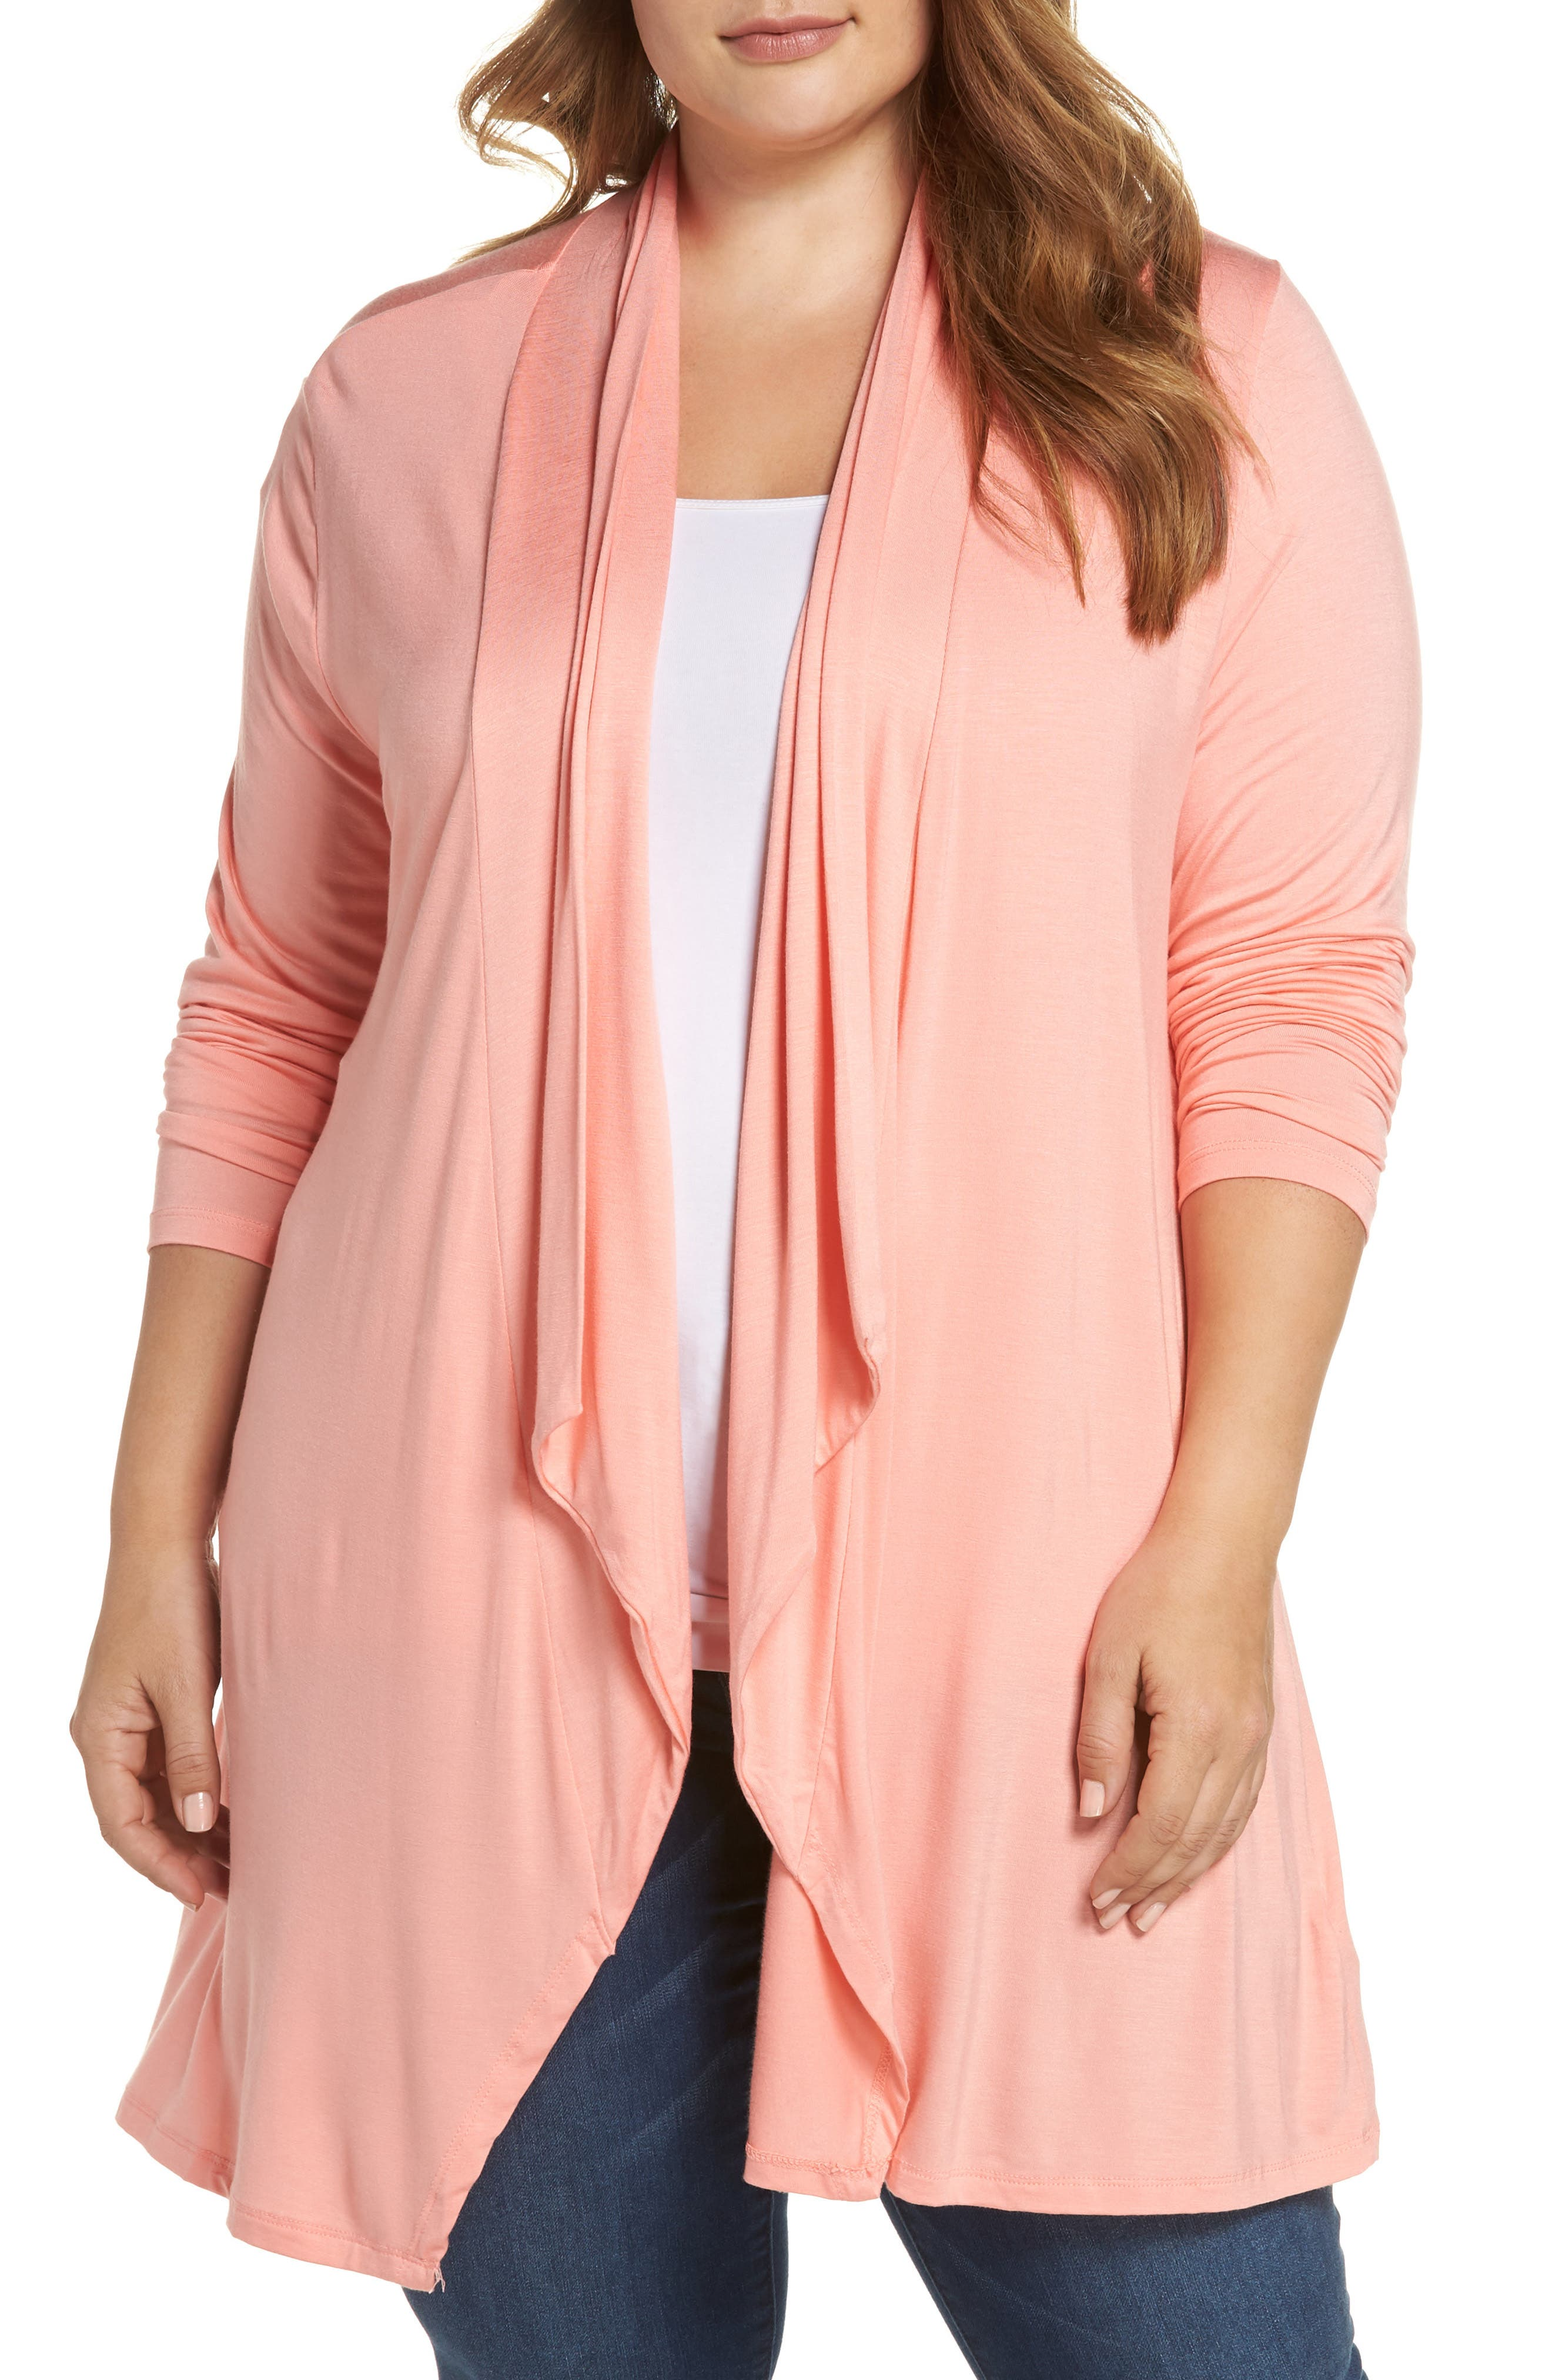 Waterfall Drape Front Cardigan,                         Main,                         color, Shrimp Cocktail